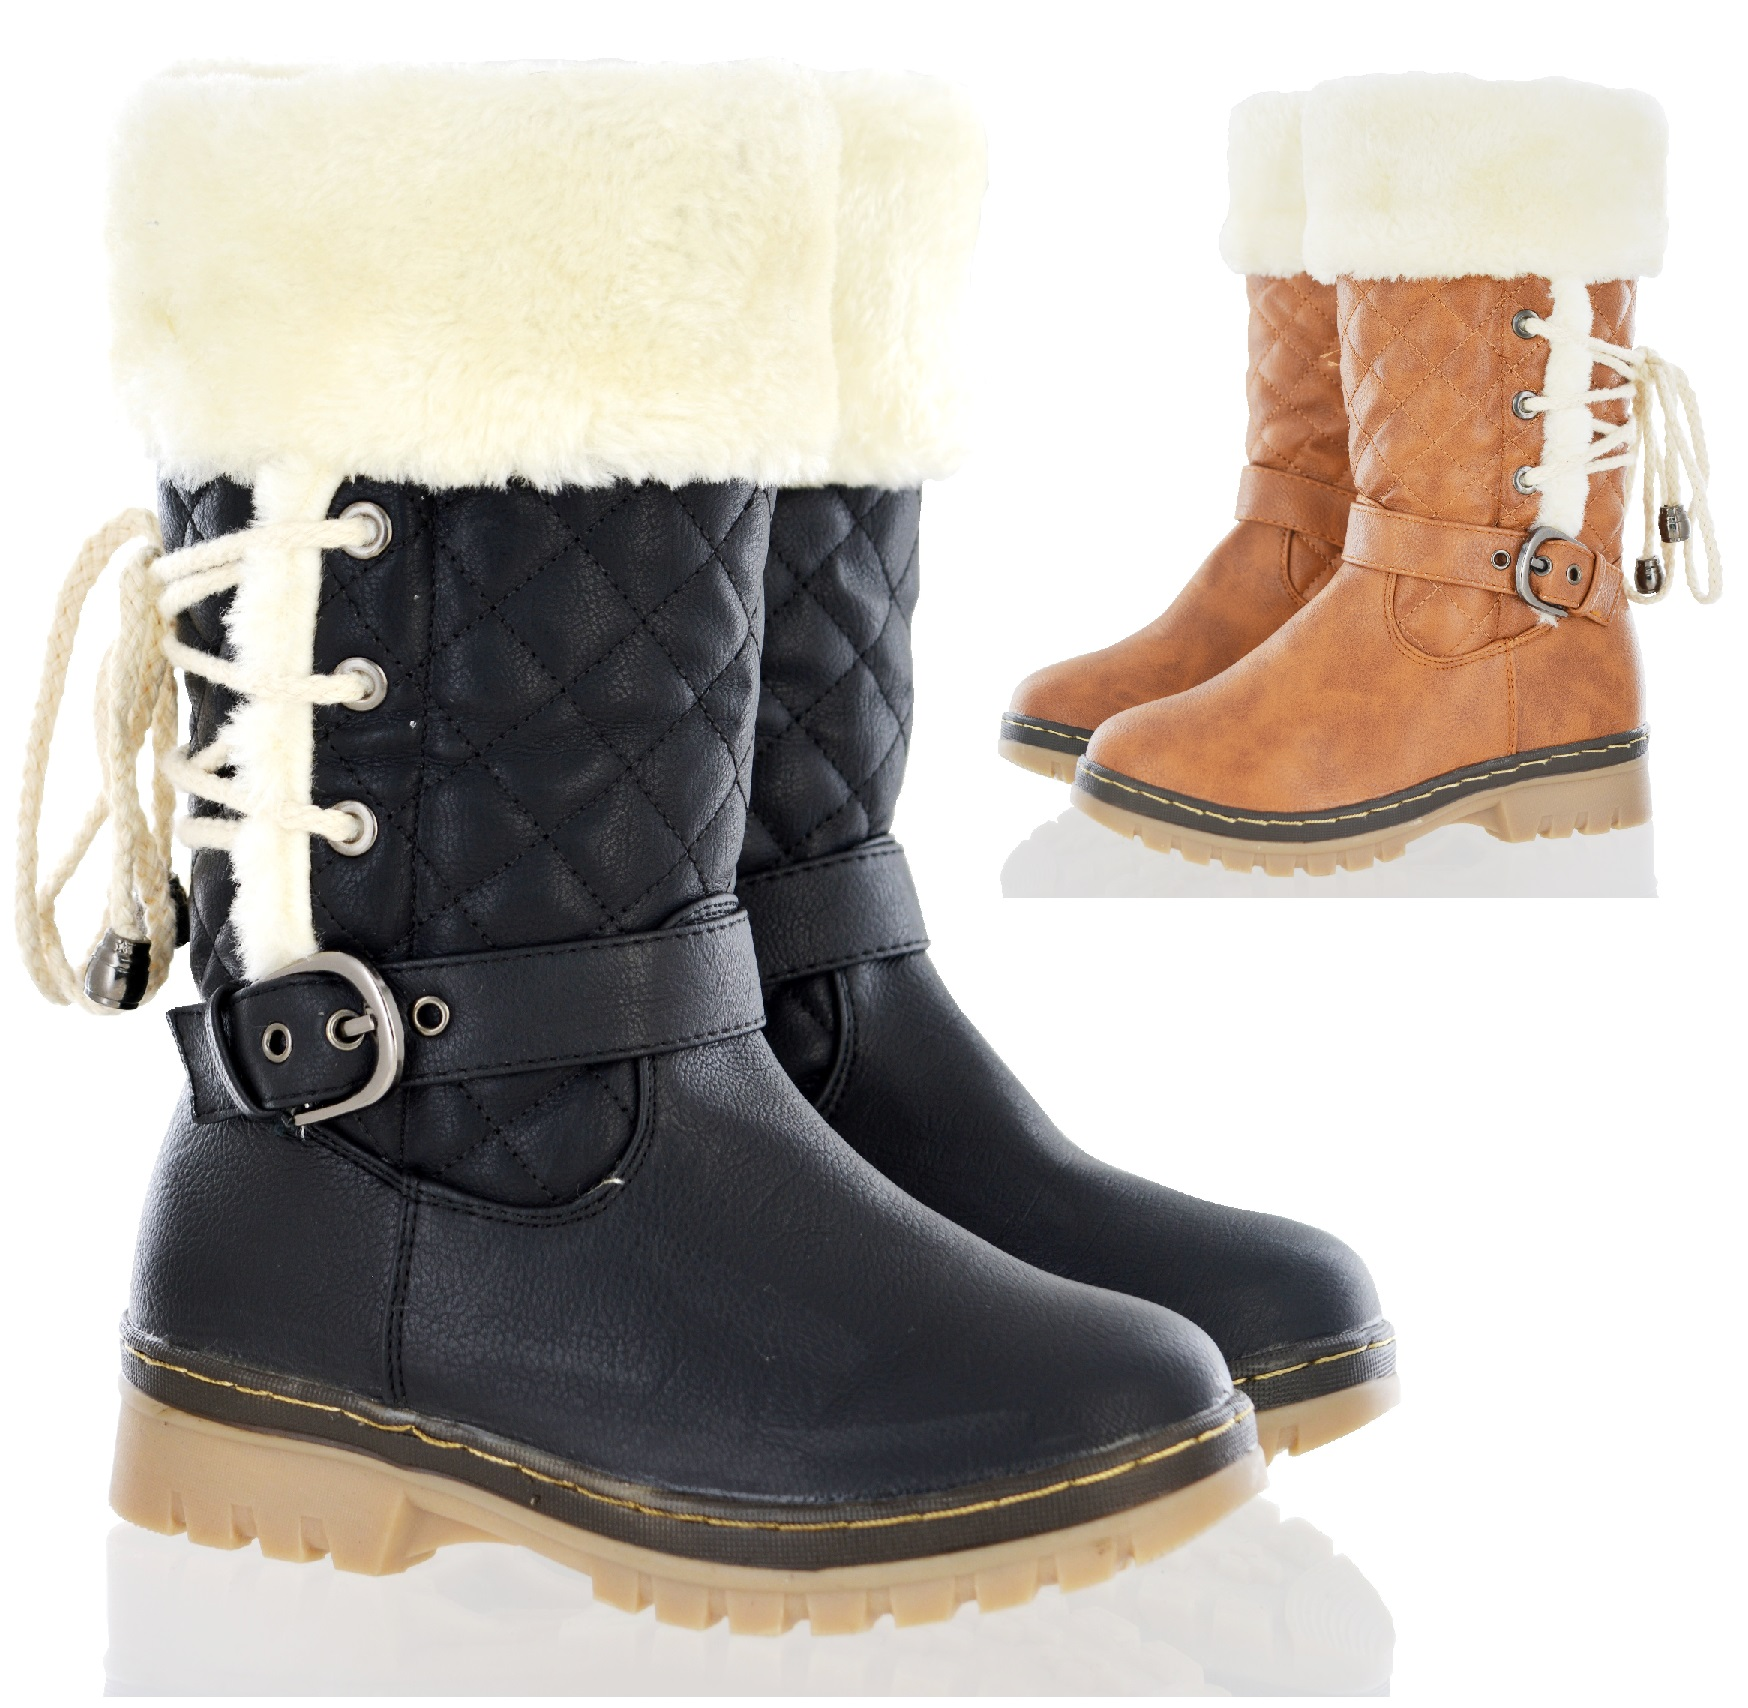 KIDS GIRLS CHILDRENS BOOTS SHOES FULLY FUR LINED WARM